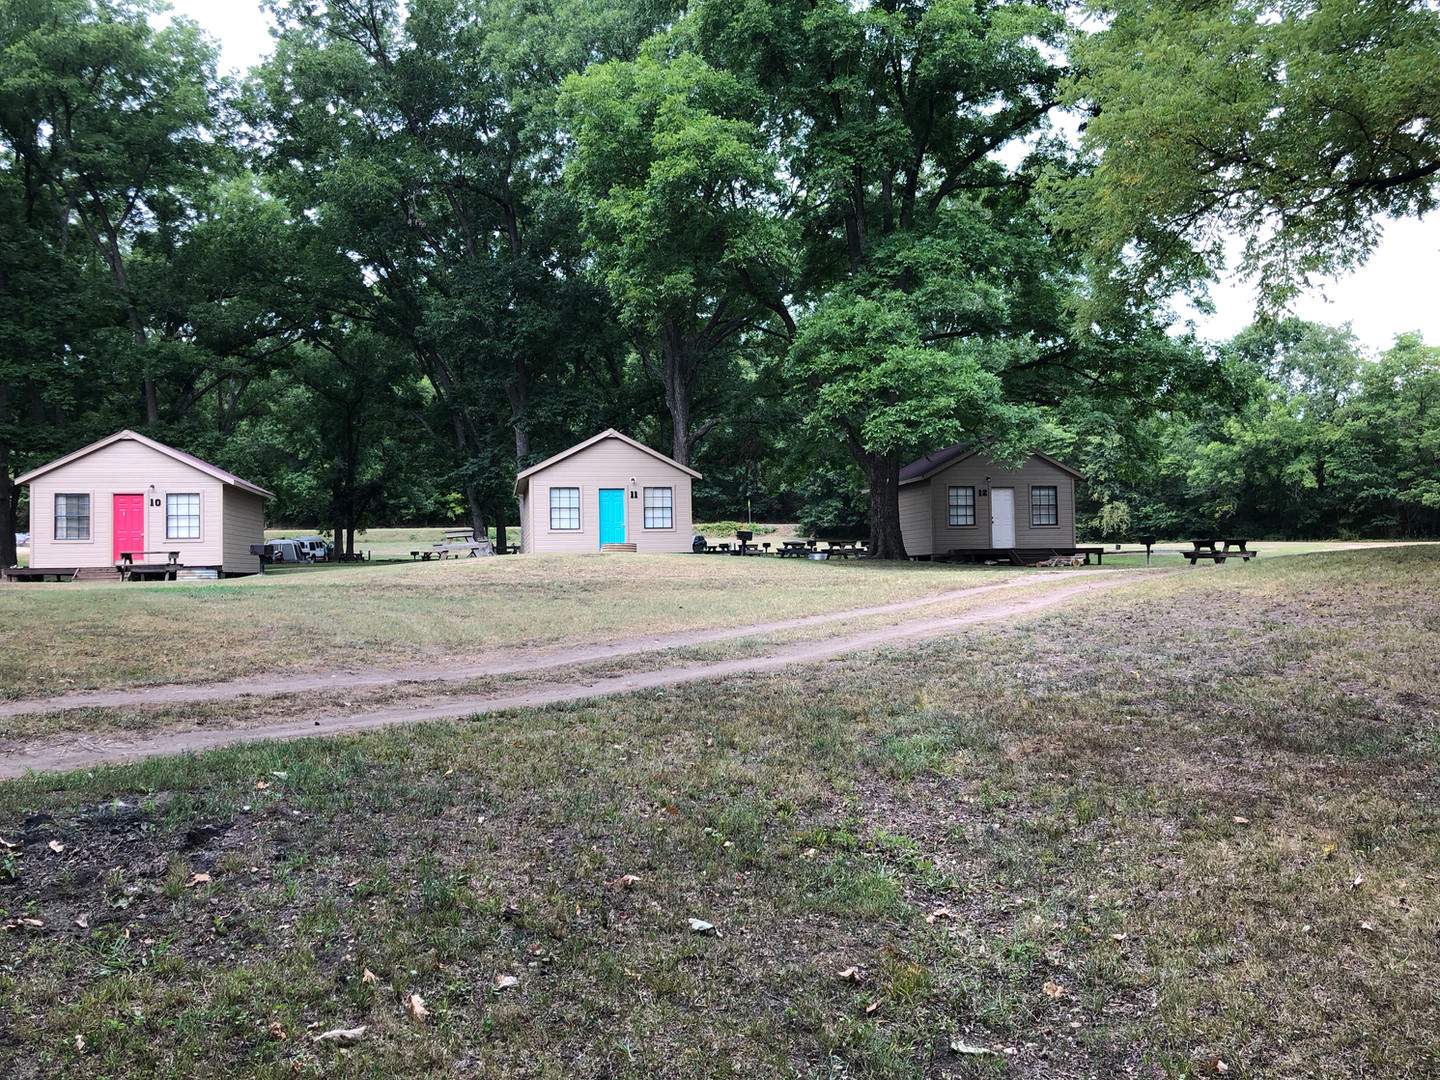 Cabins 10, 11, and 12